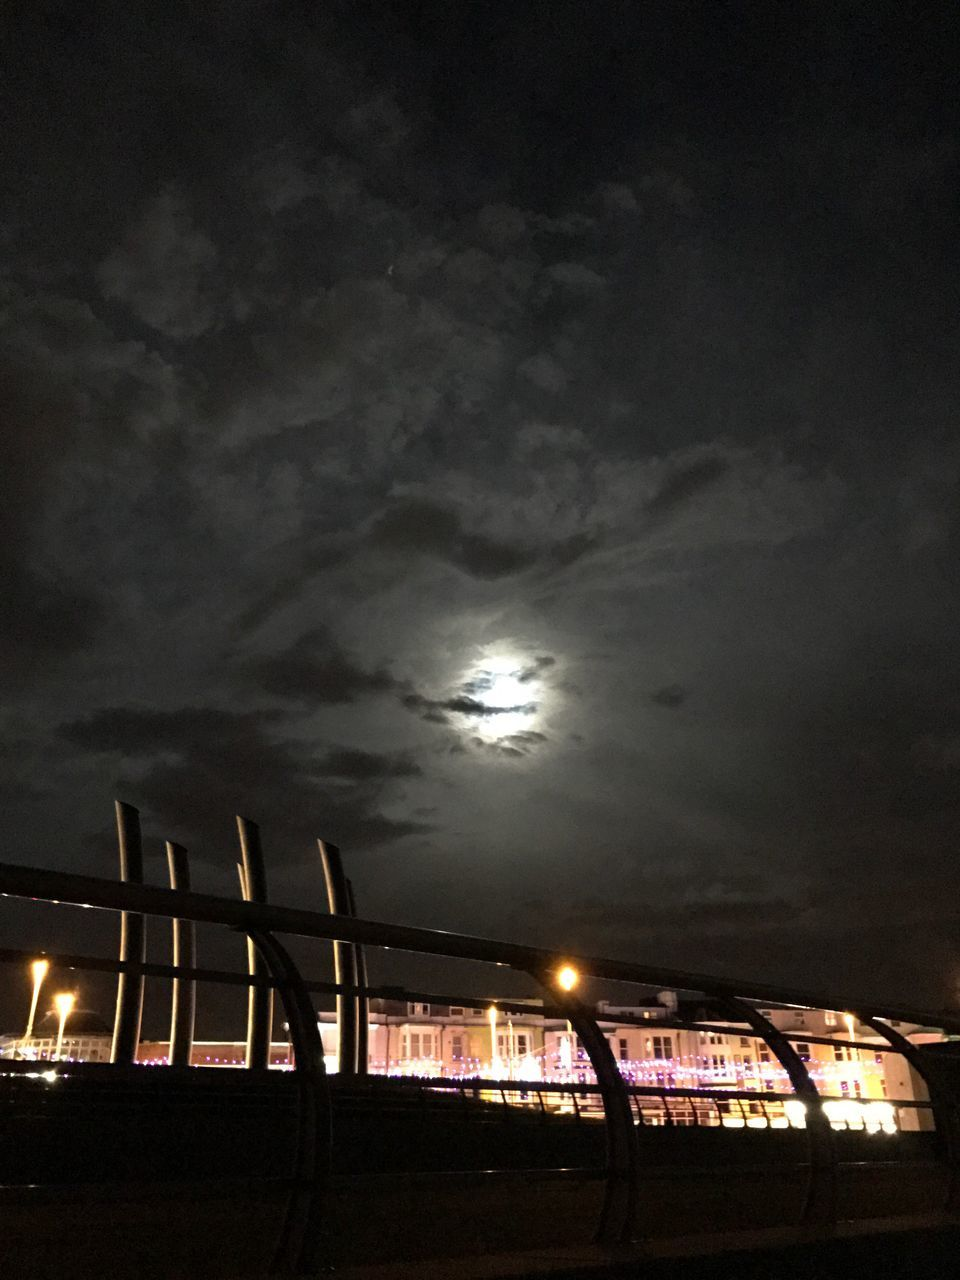 sky, night, illuminated, cloud - sky, moon, low angle view, built structure, no people, outdoors, silhouette, sunset, nature, beauty in nature, architecture, scenics, building exterior, city